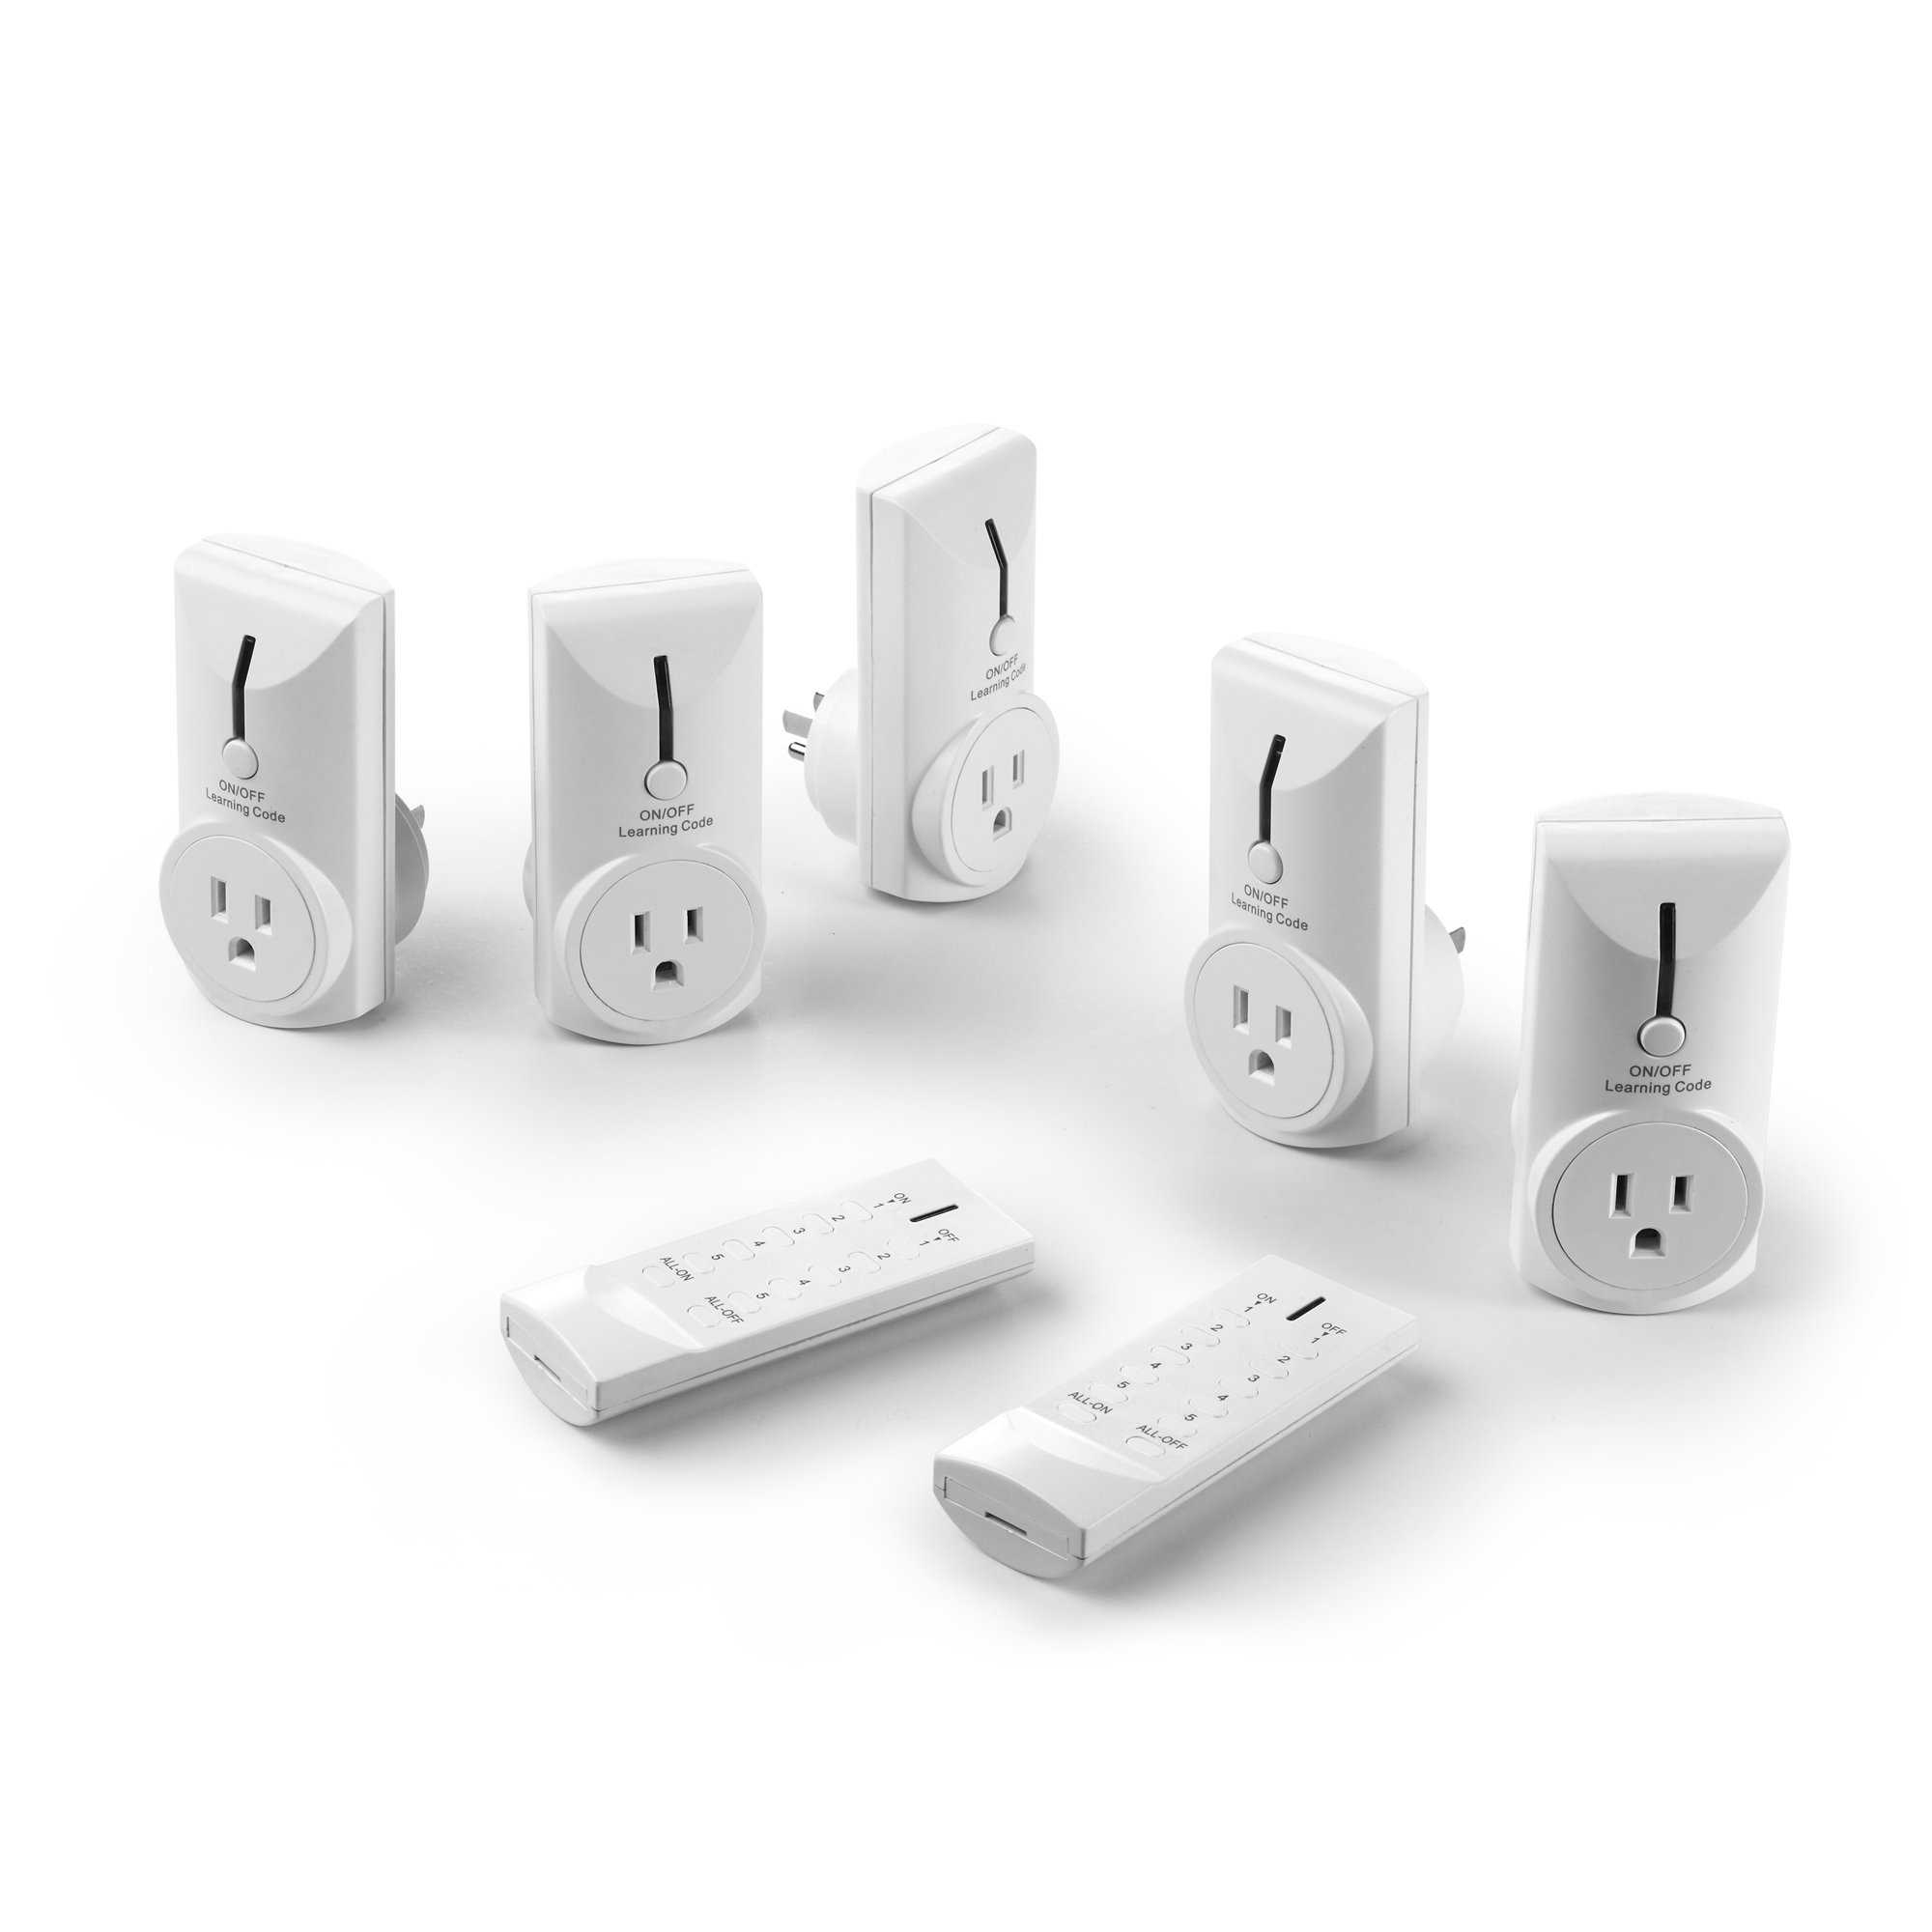 Link2Home EM-1001 Wireless Remote Control ELECTRICAL Outlet Switch For Household Appliances & Electronics with 5 Outlets & 2 Remotes, White